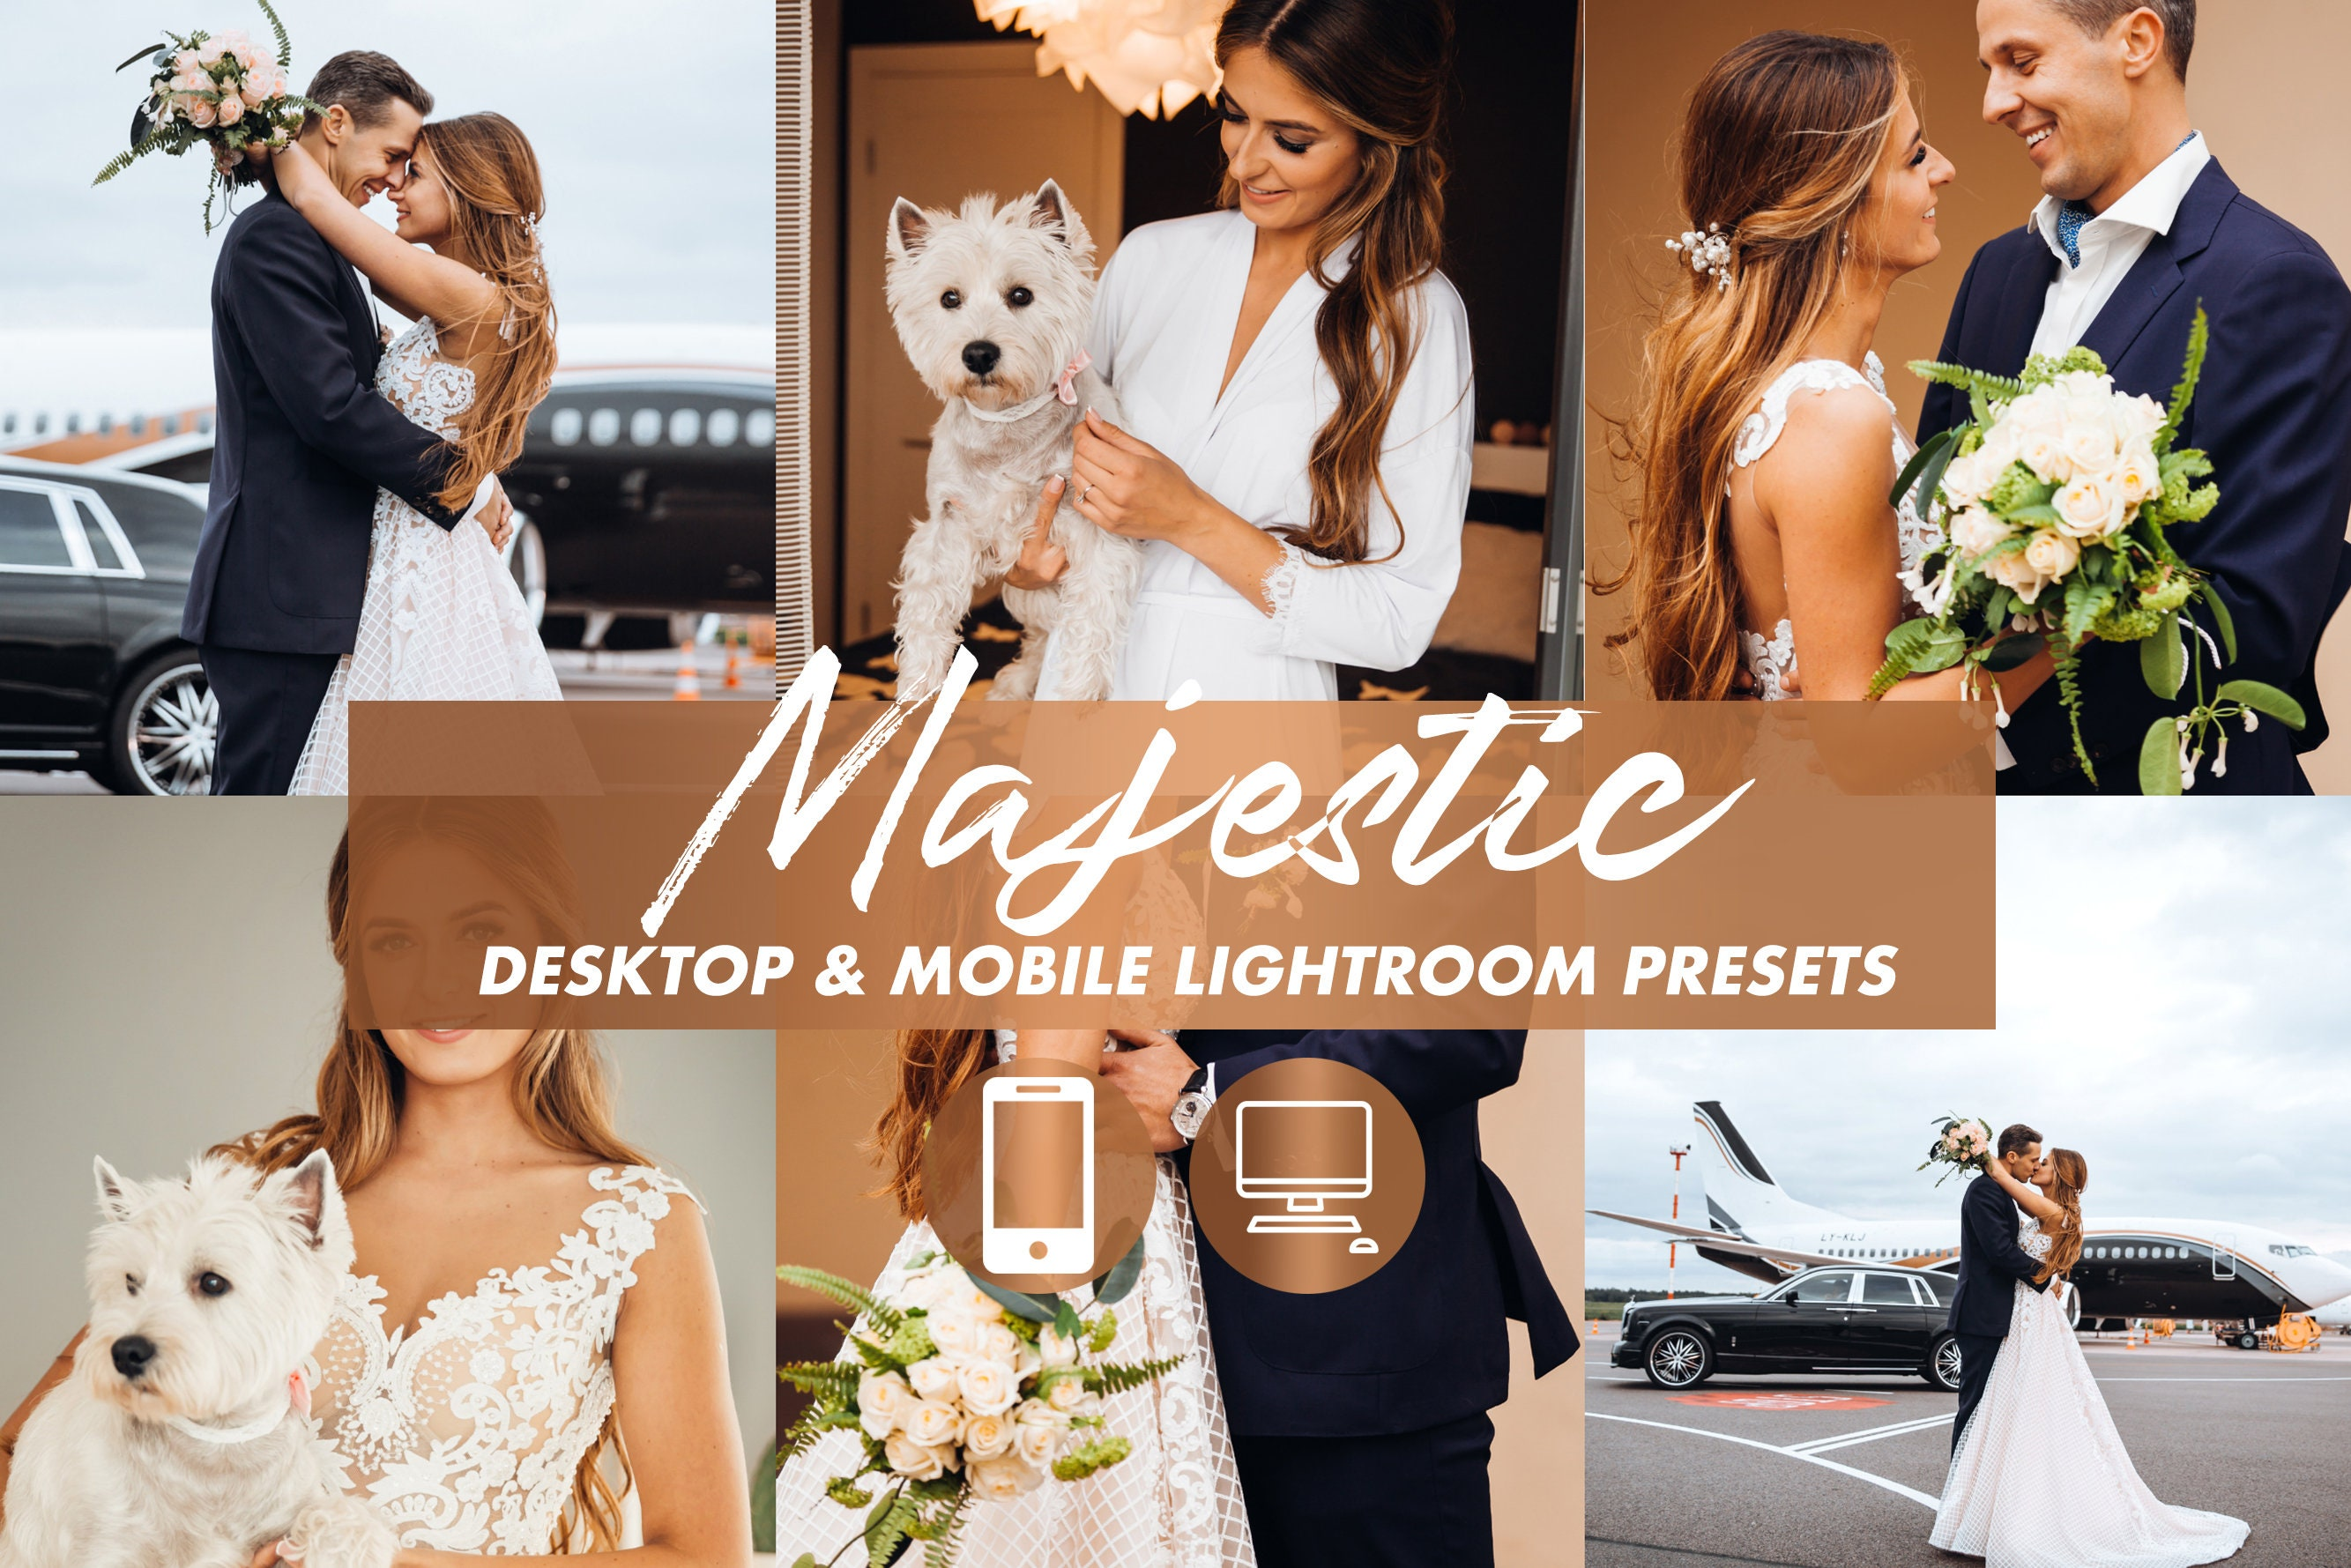 Mobile Lightroom Preset MAJESTIC Warm Moody Premium Wedding